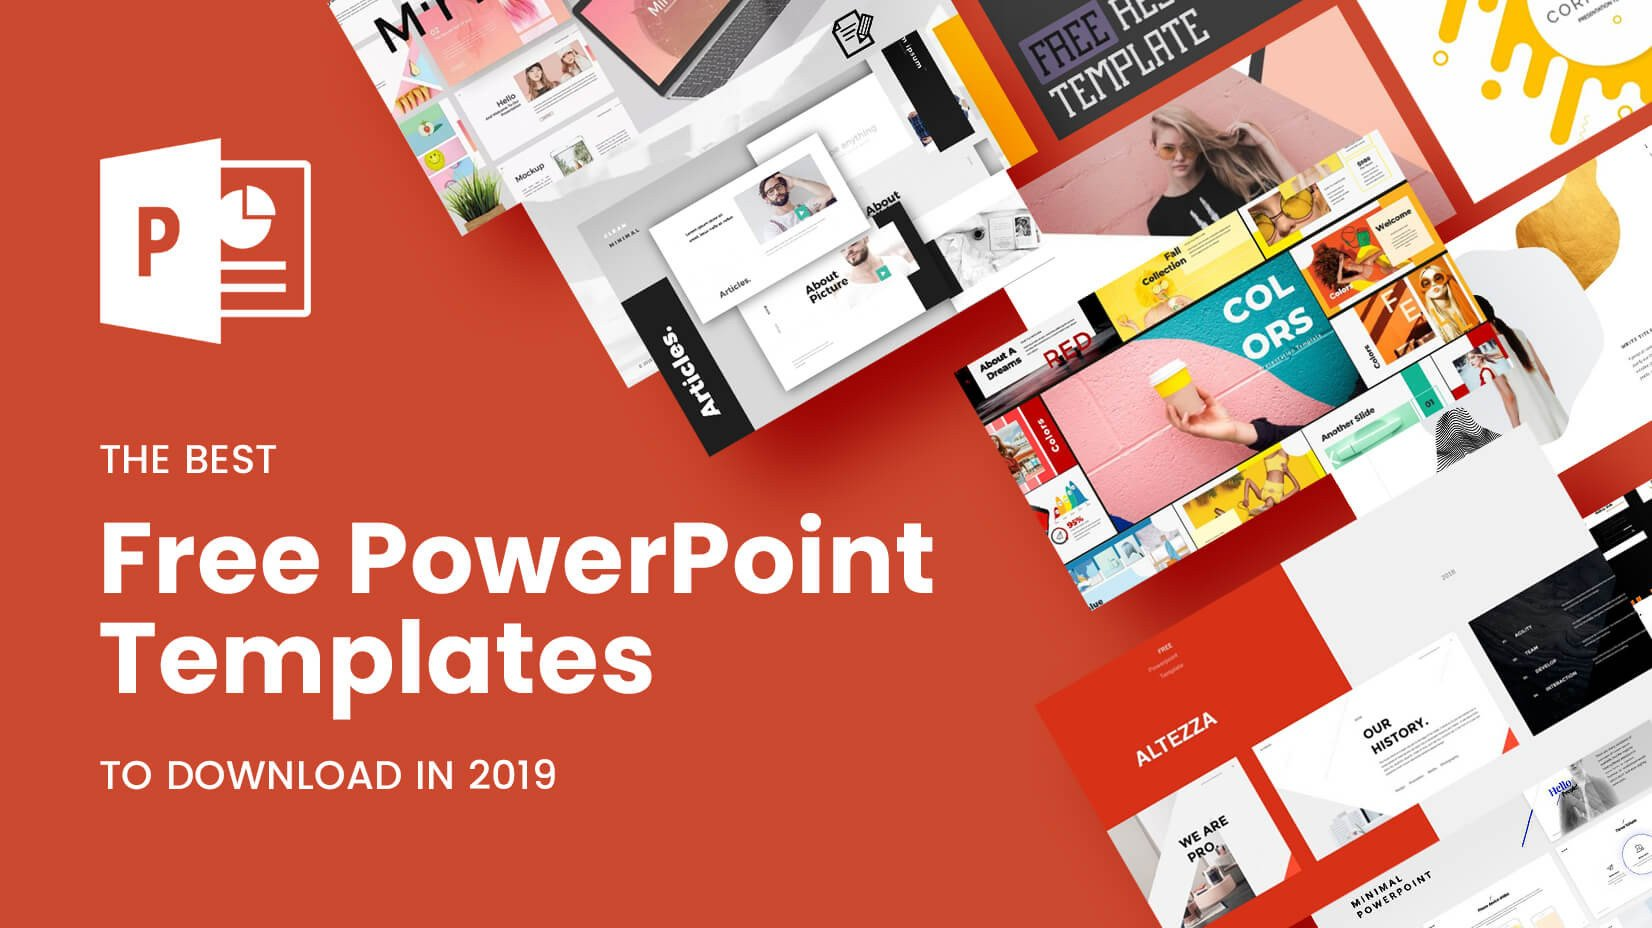 Ppt Template Free Download the Best Free Powerpoint Templates to Download In 2019